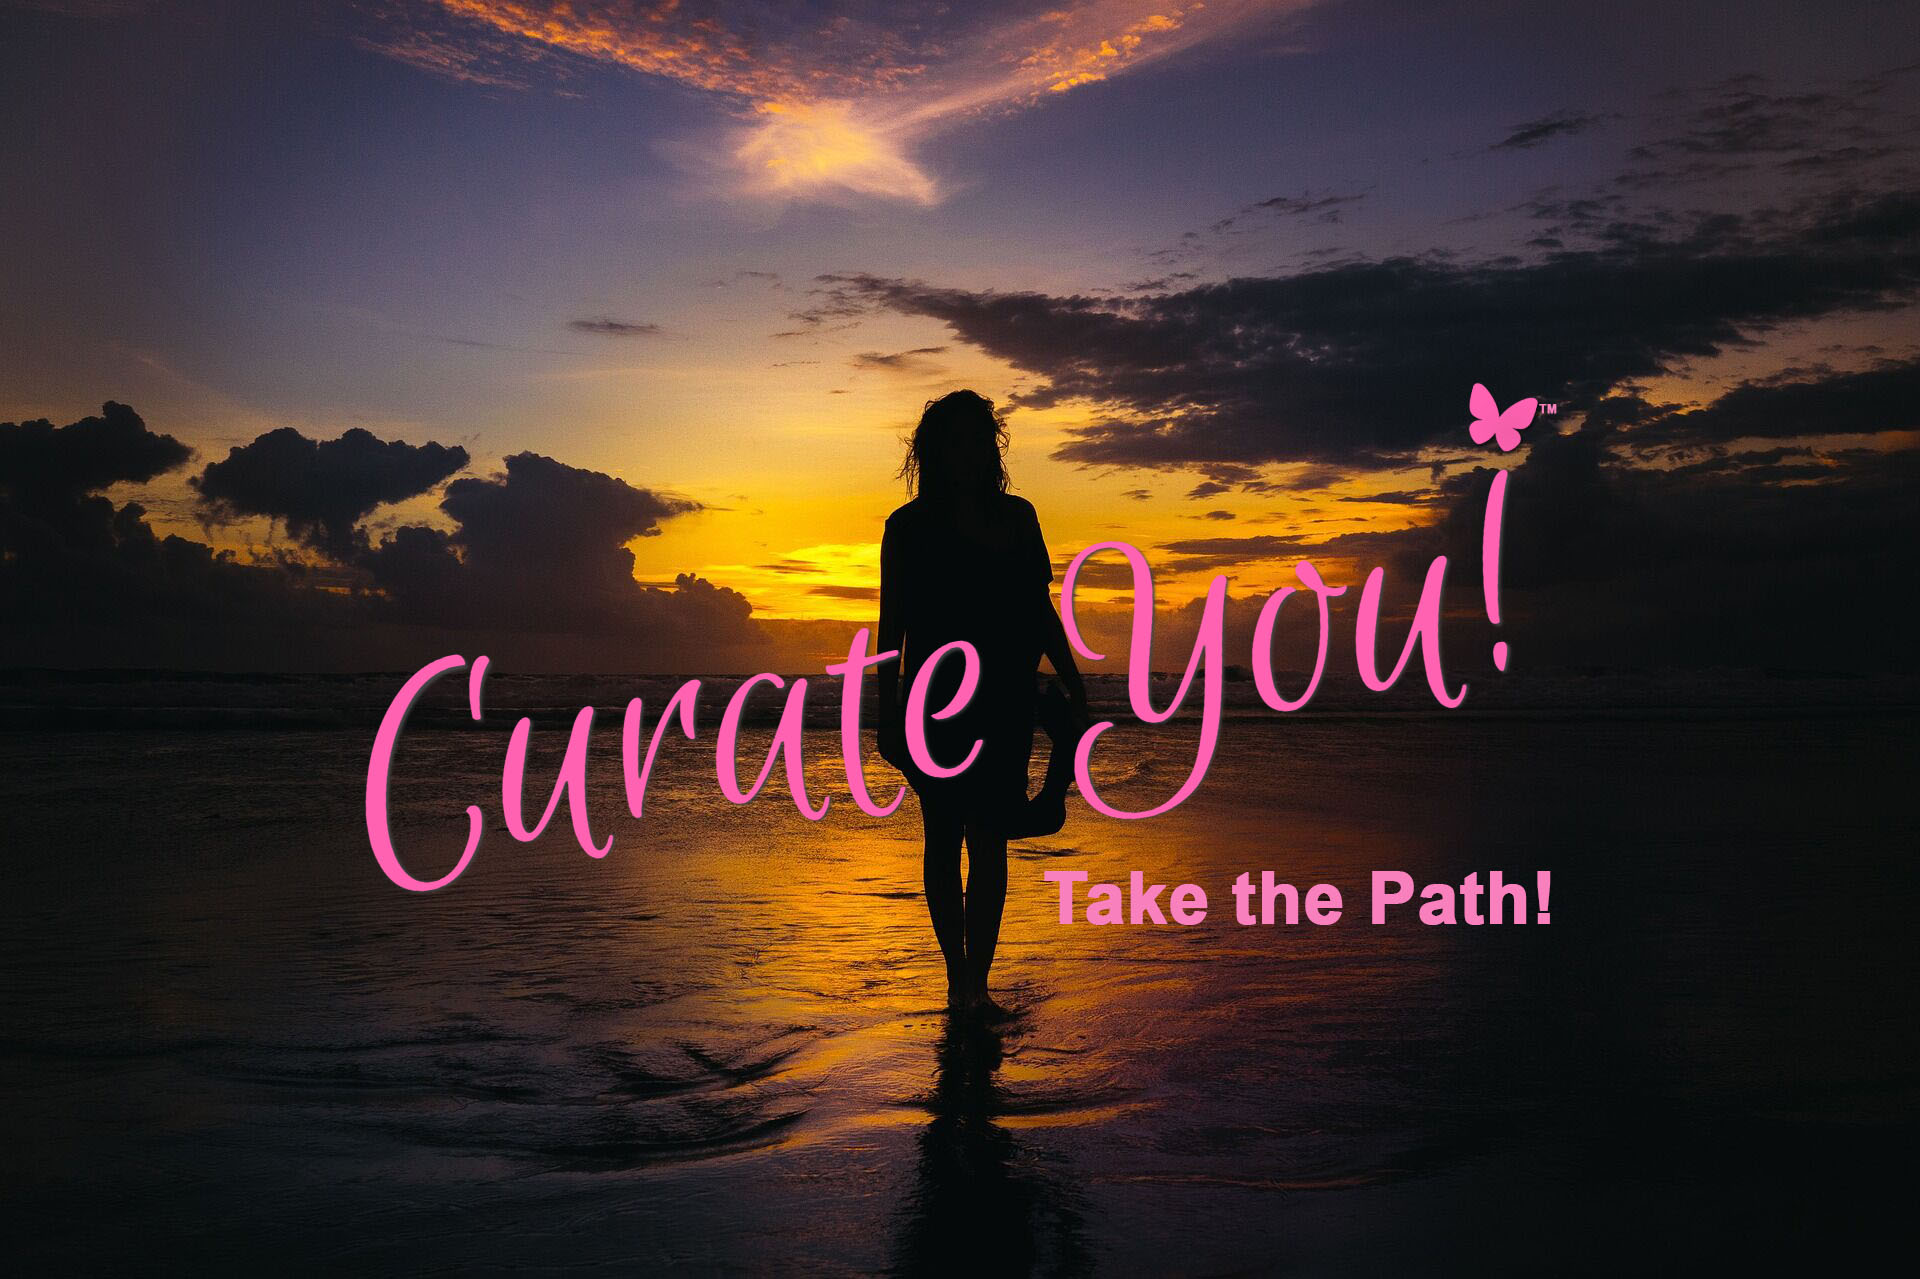 Curate YOU